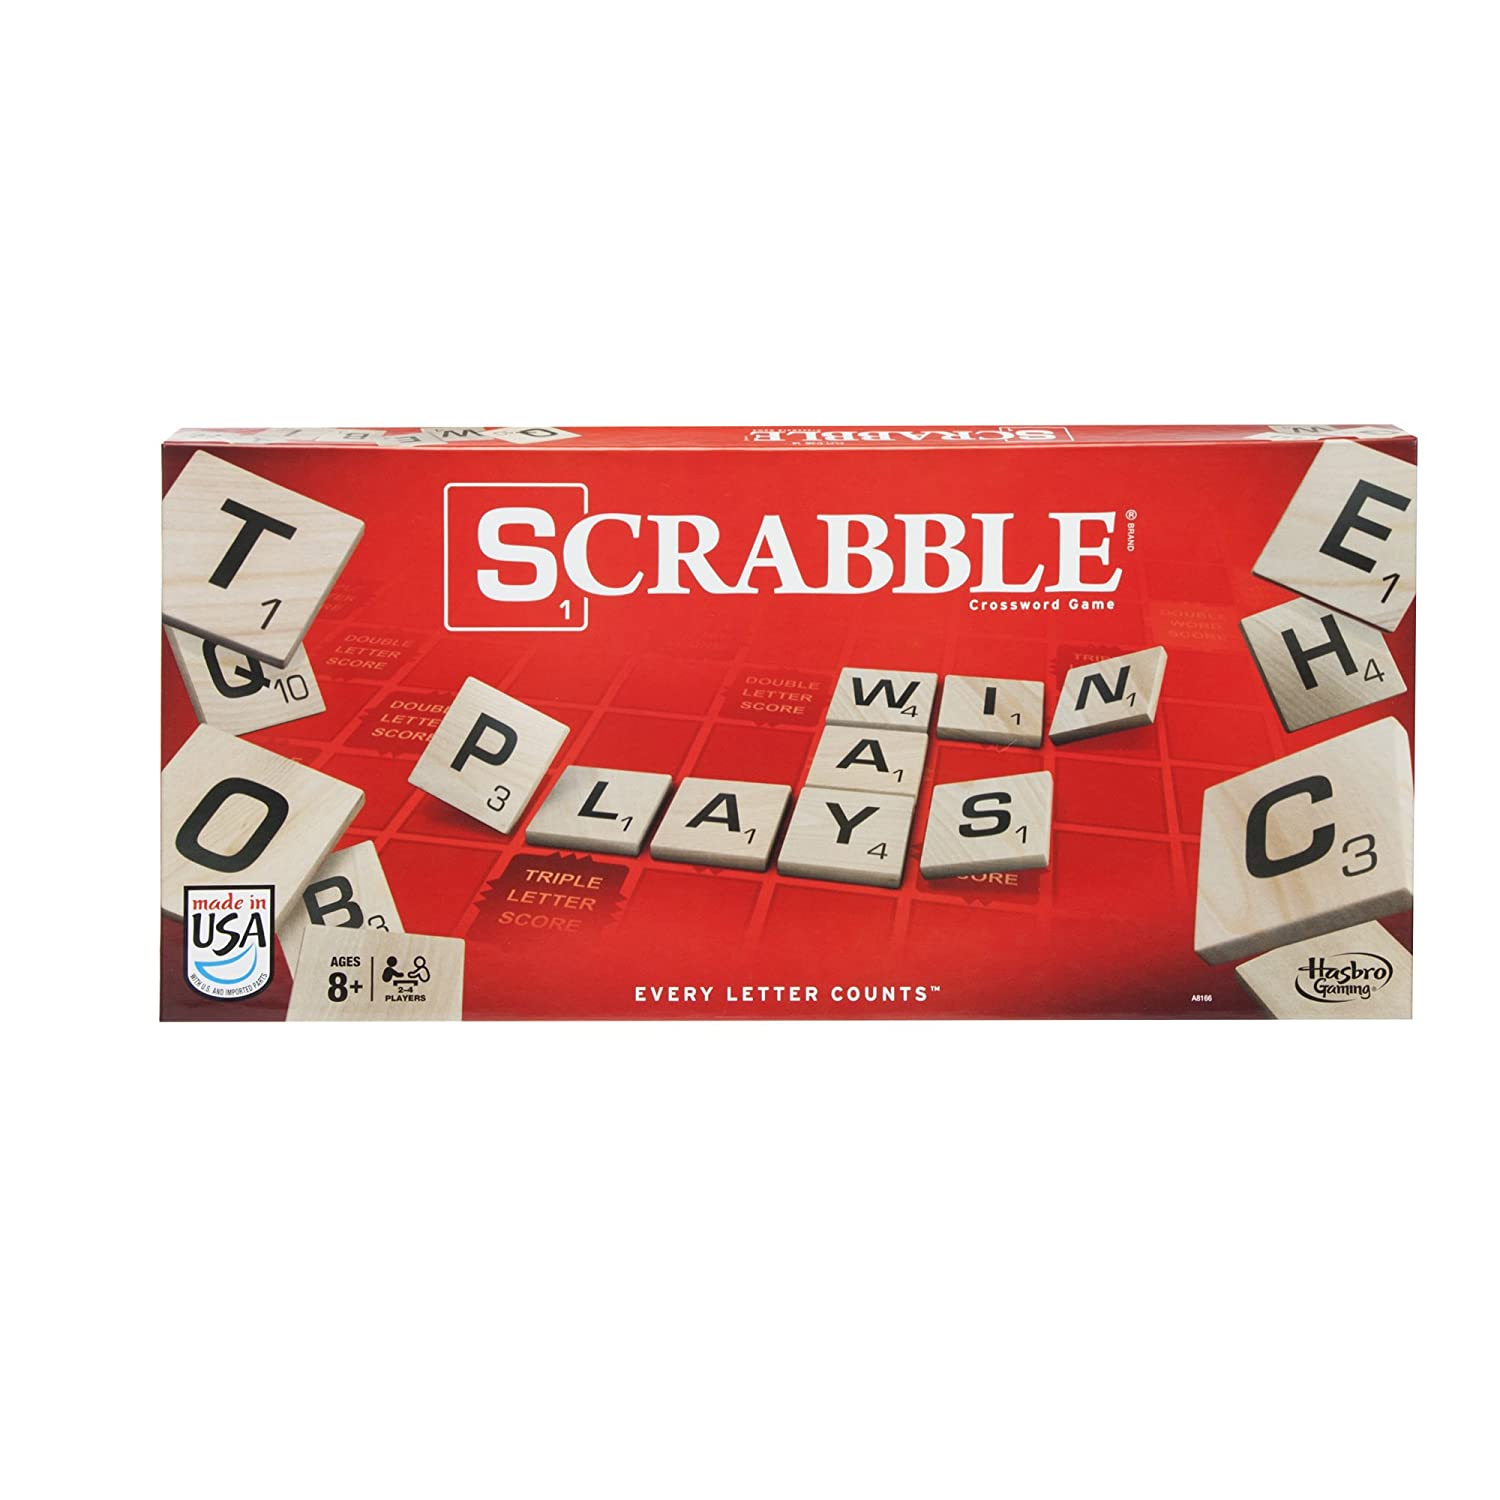 Hasbro Scrabble Crossword Game...